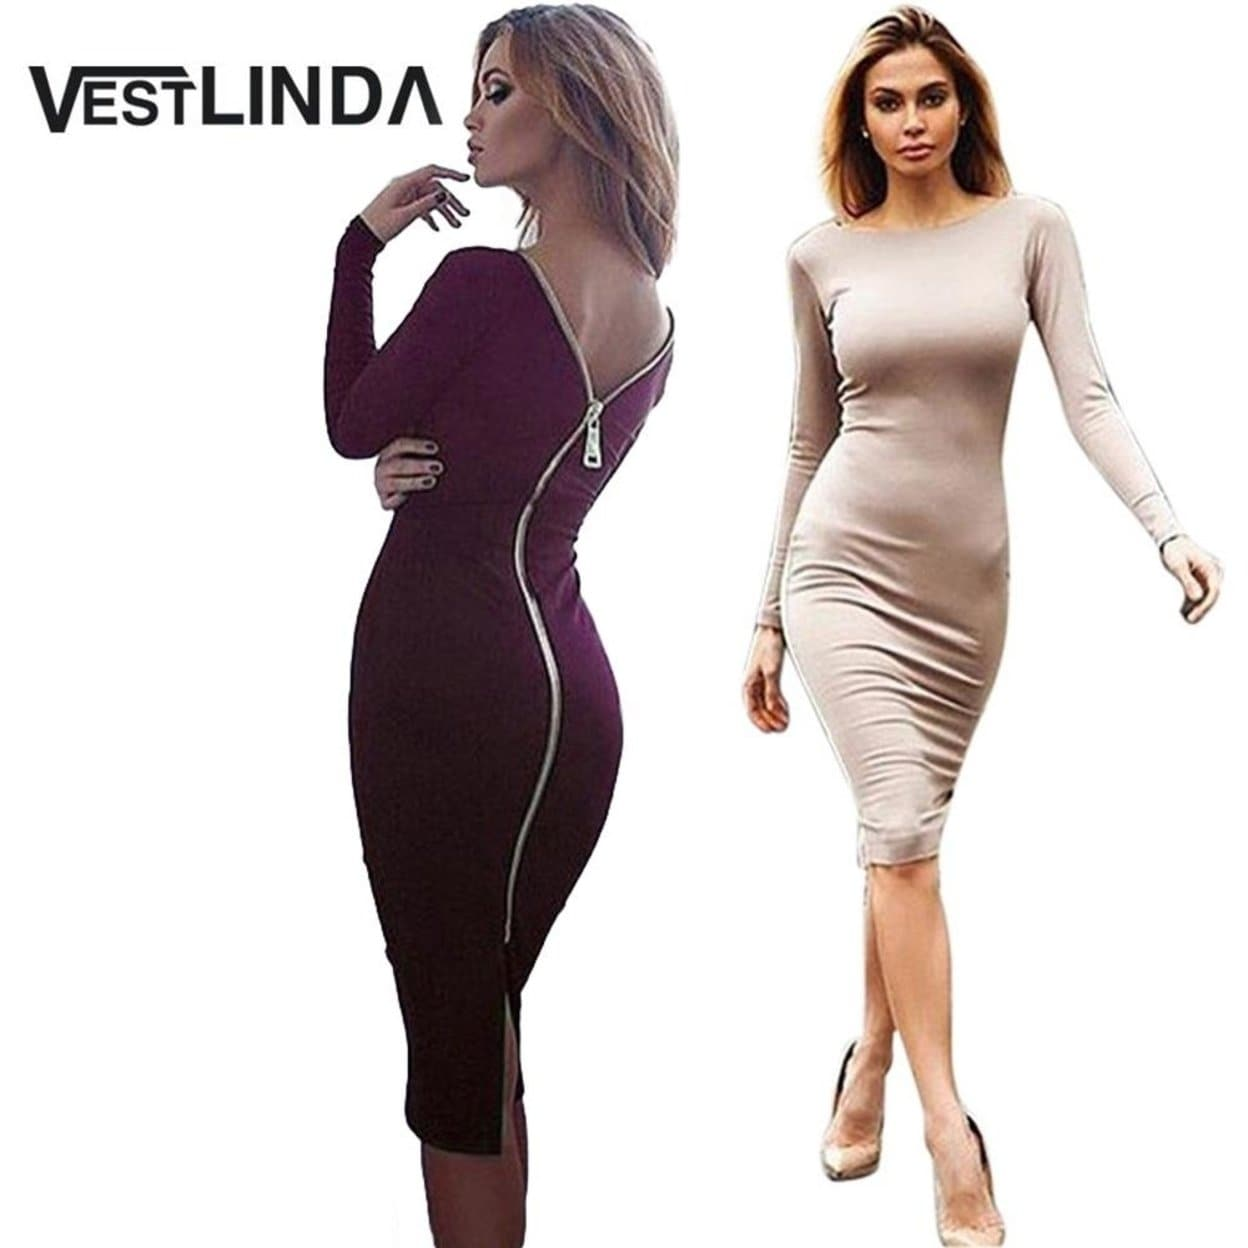 Vestlinda Plus Size Robe Hot Femme Midi Sheath Bodycon Dress Long Sleeve  Elegant Dresses Women Back Zipper Pencil Tight Dress